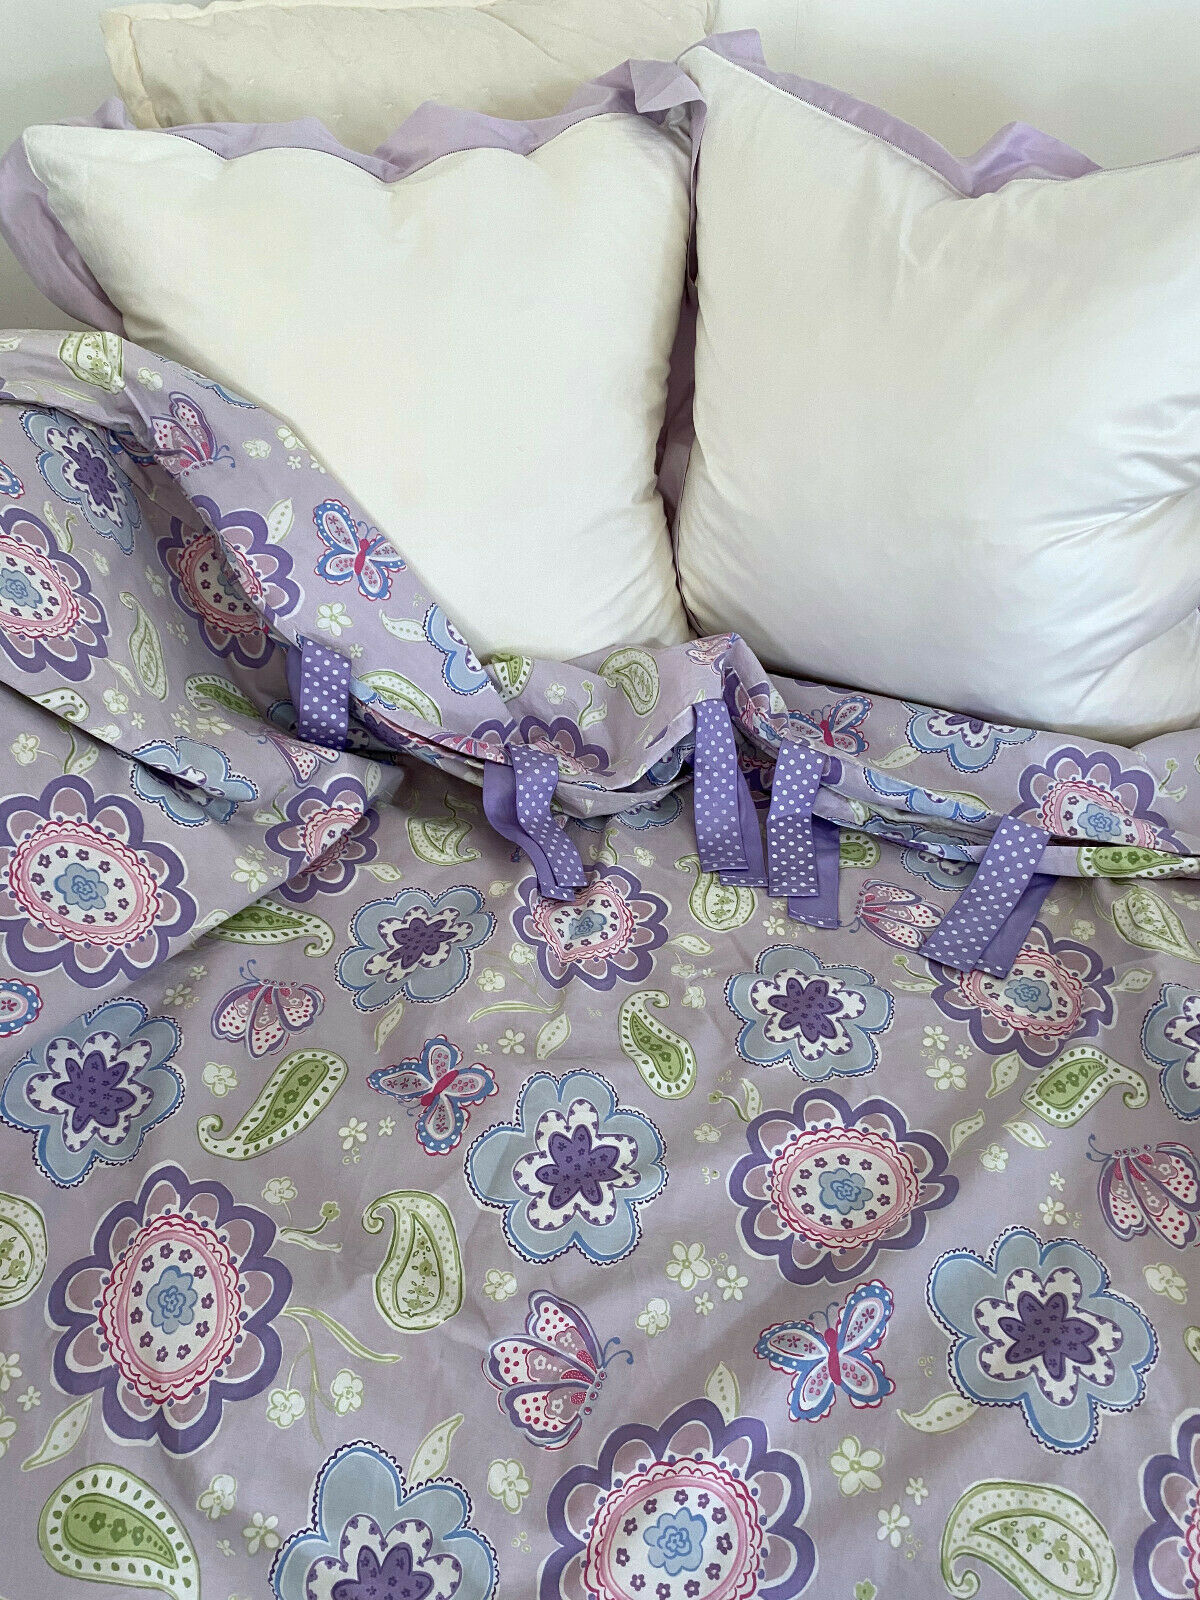 Pottery Barn Kids Samantha Twin Size Duvet Cover Pale Blue Pink Flowers Paisley - $45.99